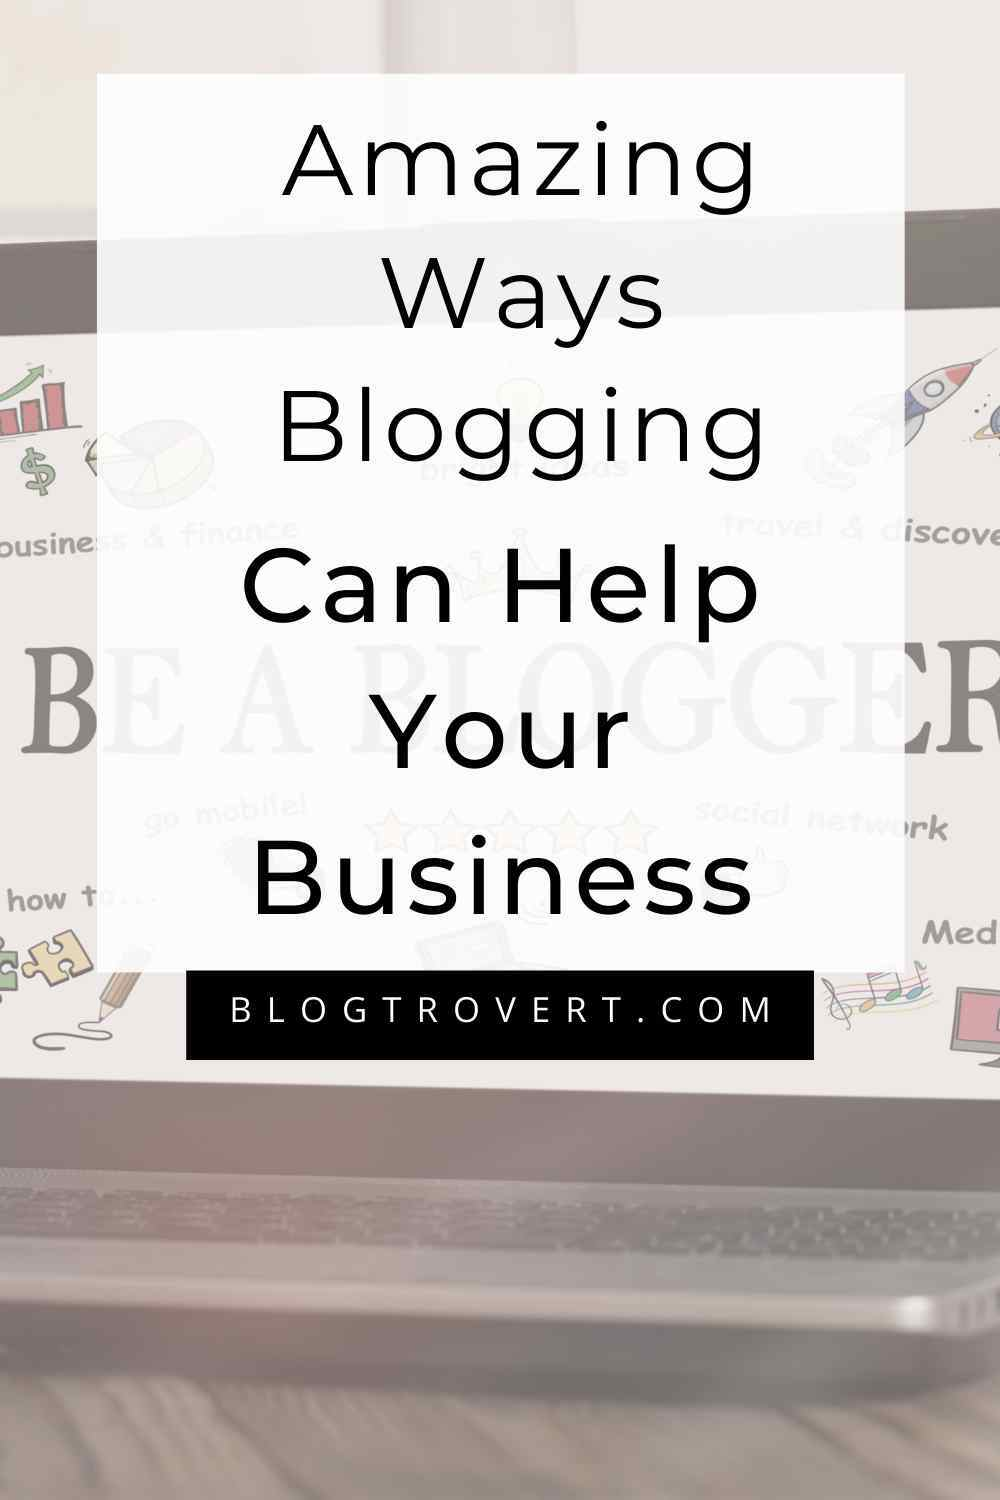 Blogging can help your business